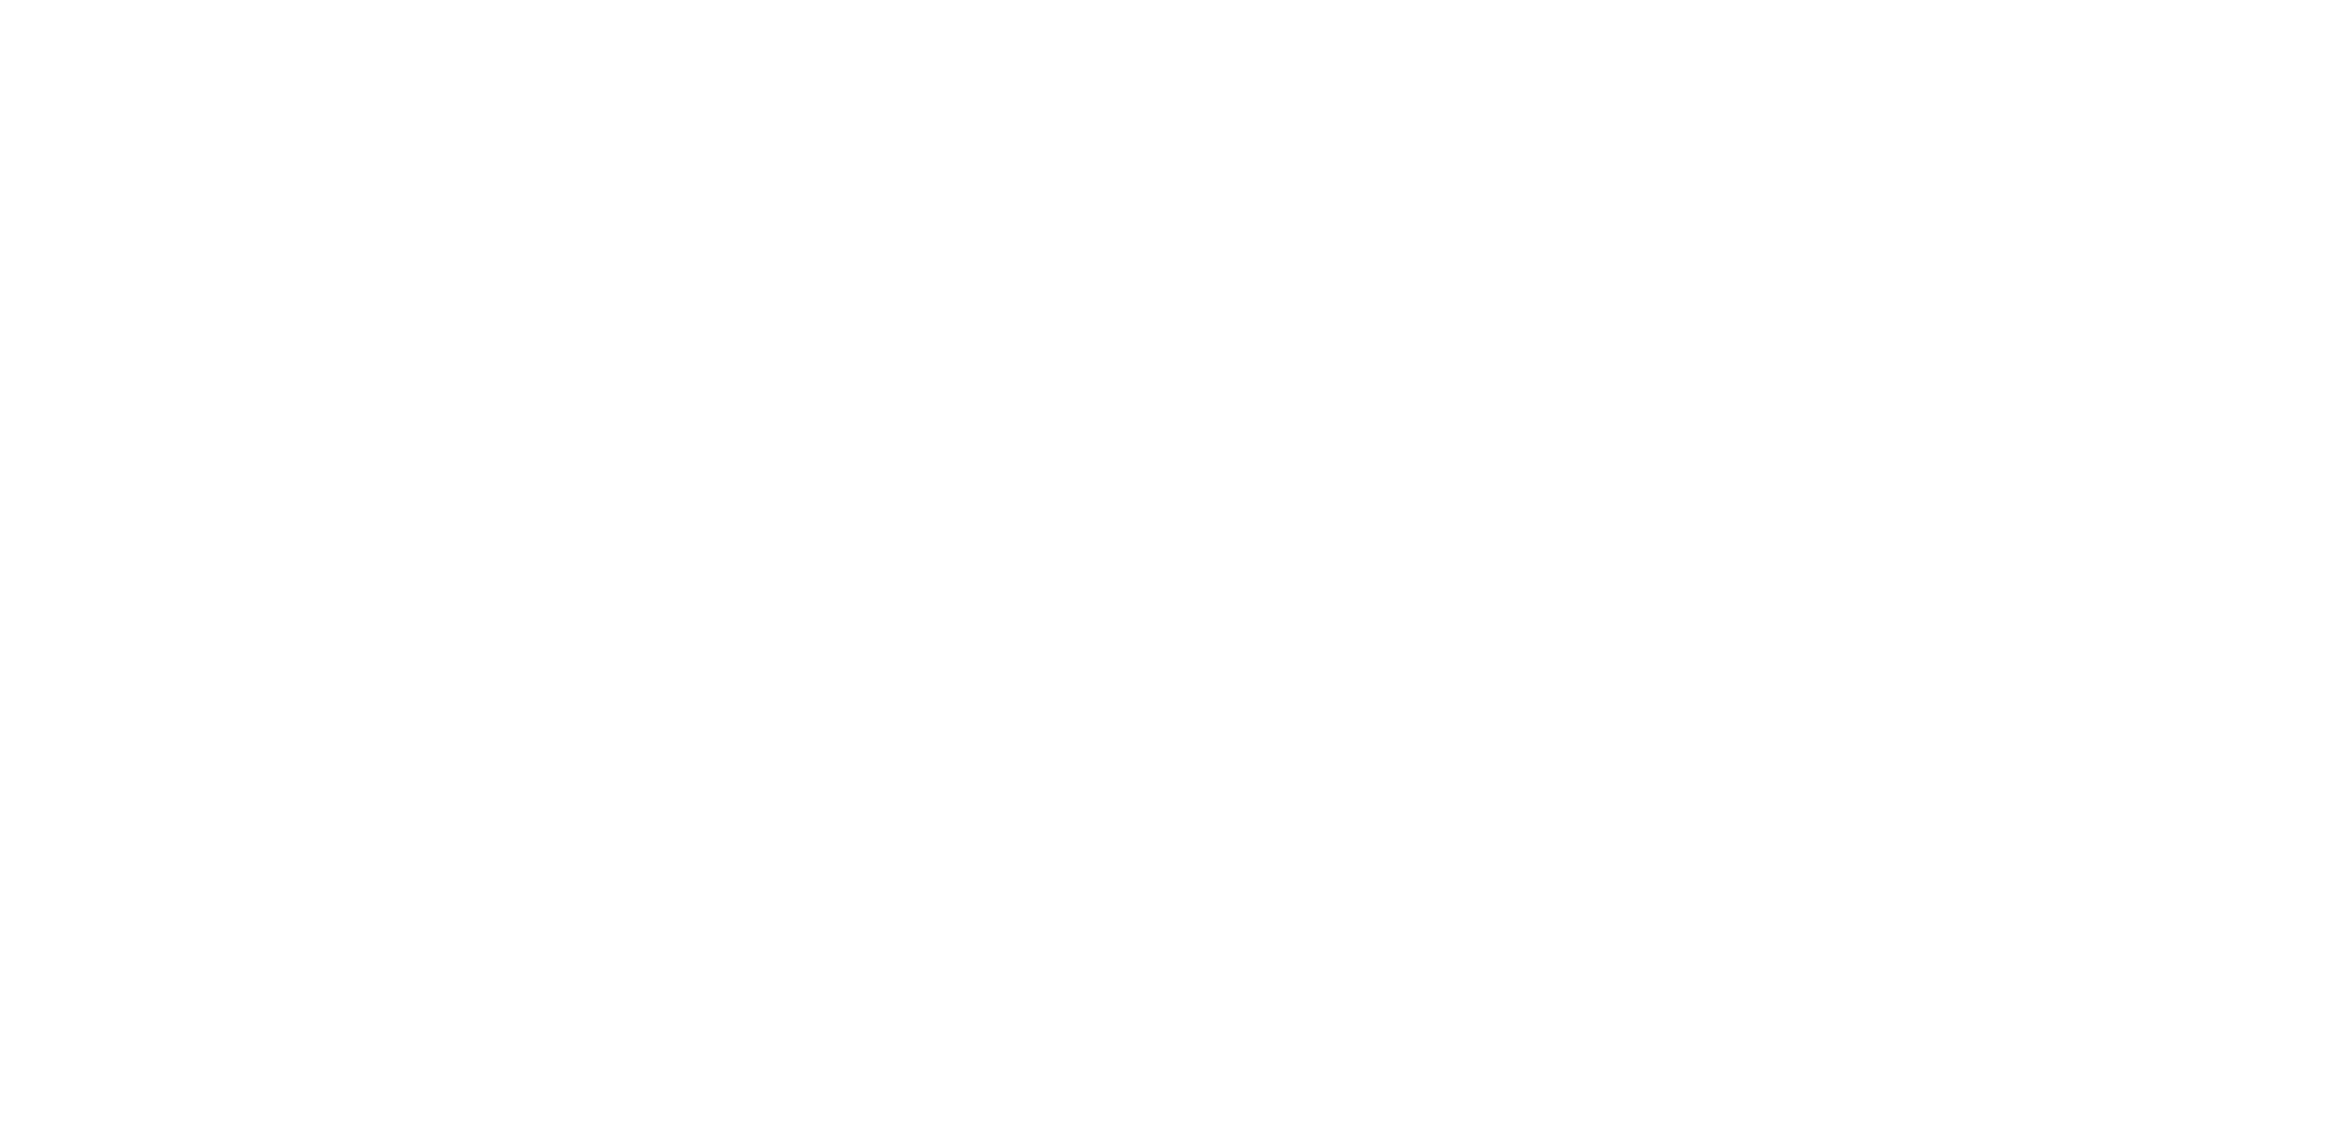 Beauty bar, dry bar, luxury salon, lash extensions, microblading, wax services, brazilian waxing, hair color, haircuts, headshots, senior pictures, family pictures, school pictures, lash lift, face wax, nose wax